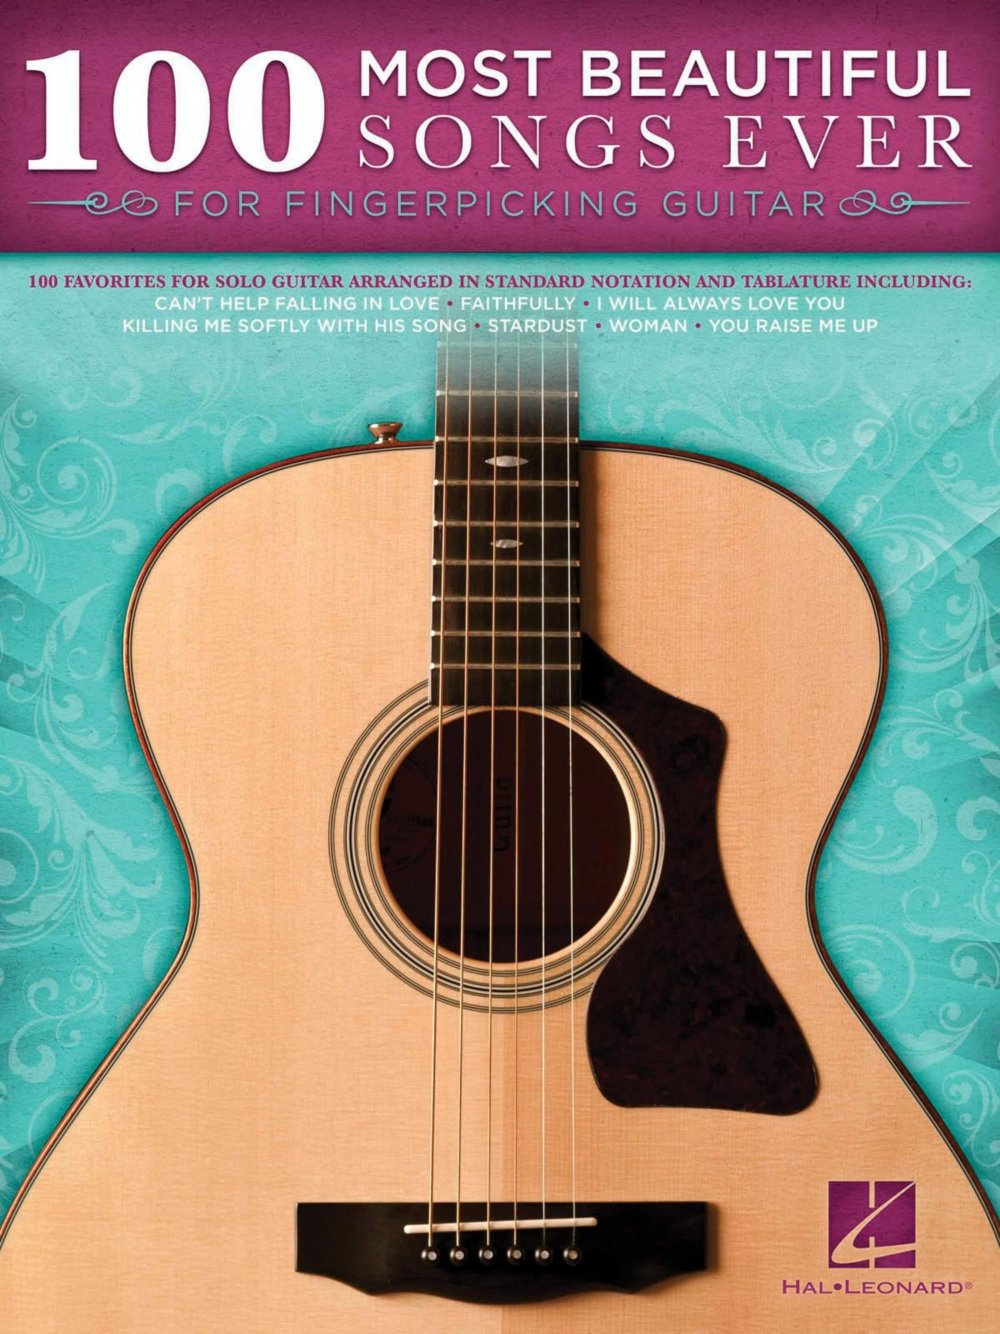 Amazon.com: Hal Leonard 100 Most Beautiful Songs Ever For Fingerpicking  Guitar (0884088641085): Hal Leonard: Books